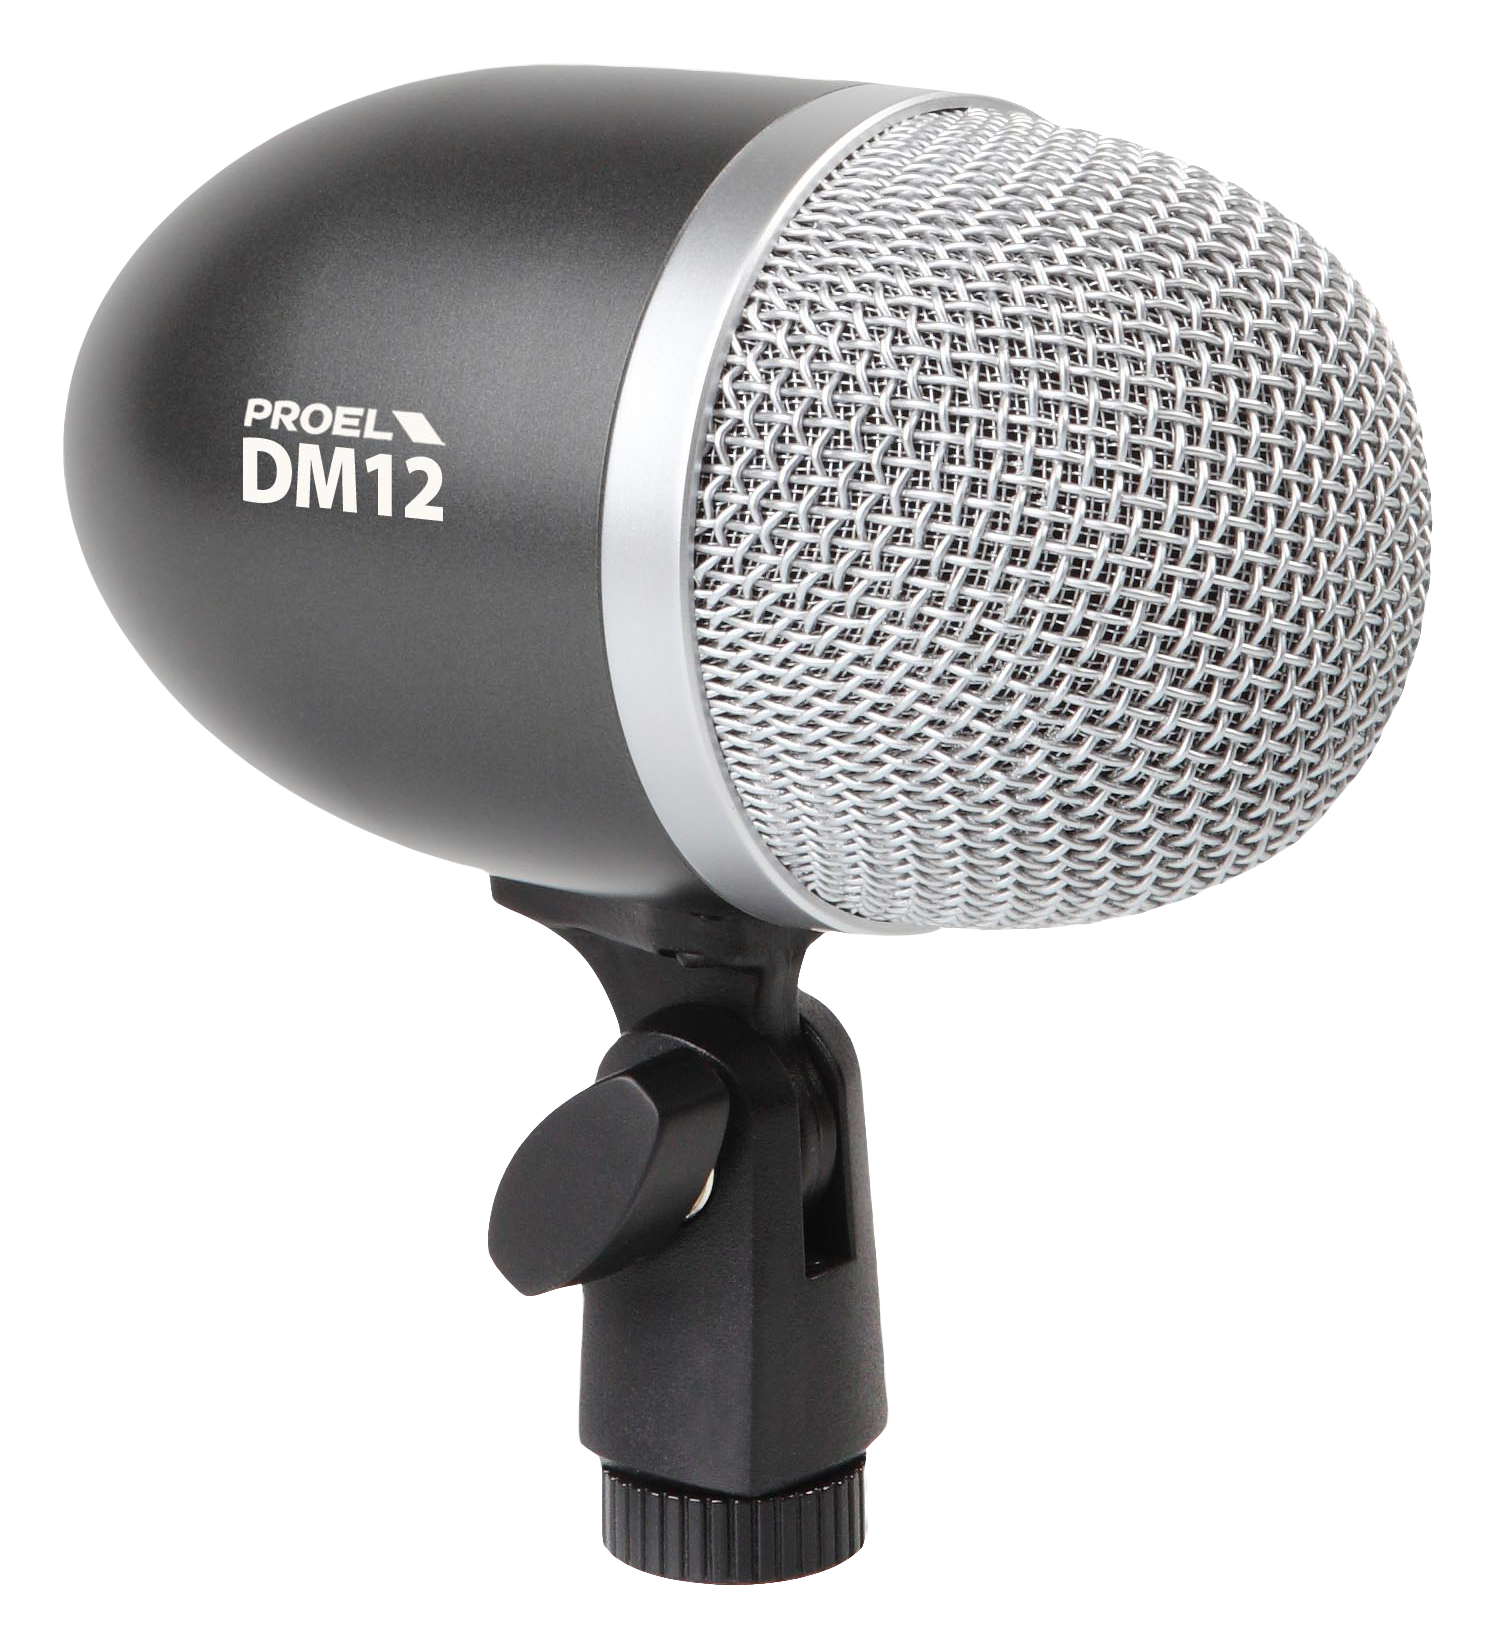 Microphone transparent png. Podcast image purepng free